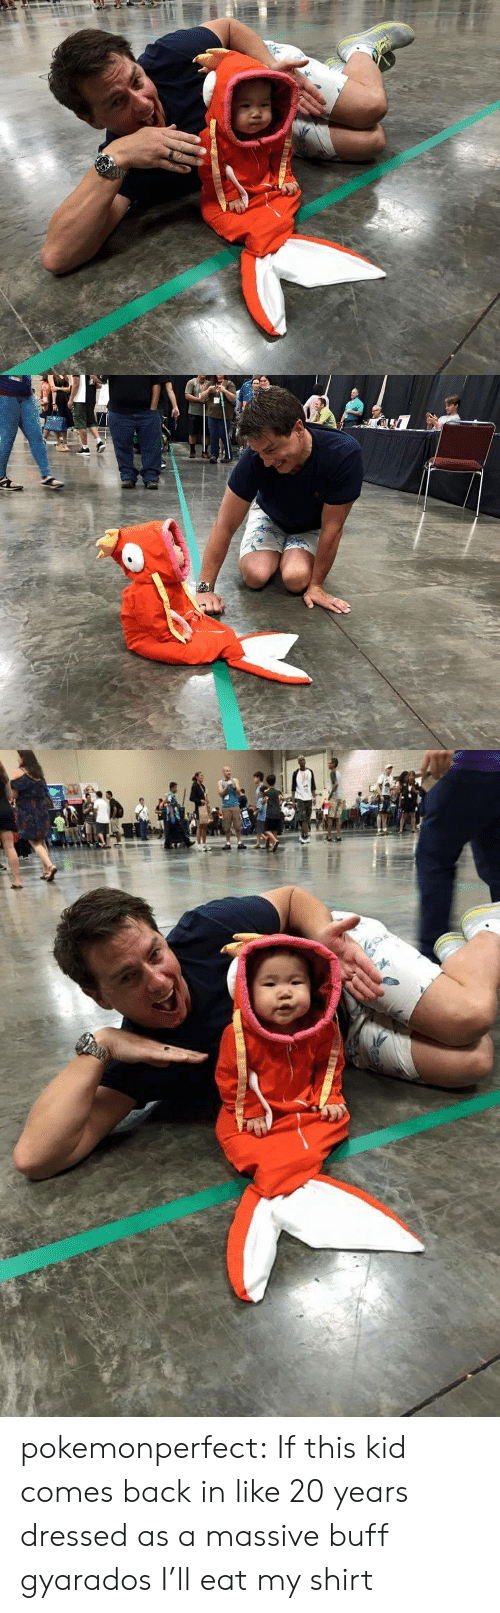 In Like: pokemonperfect:  If this kid comes back in like 20 years dressed as a massive buff gyarados I'll eat my shirt